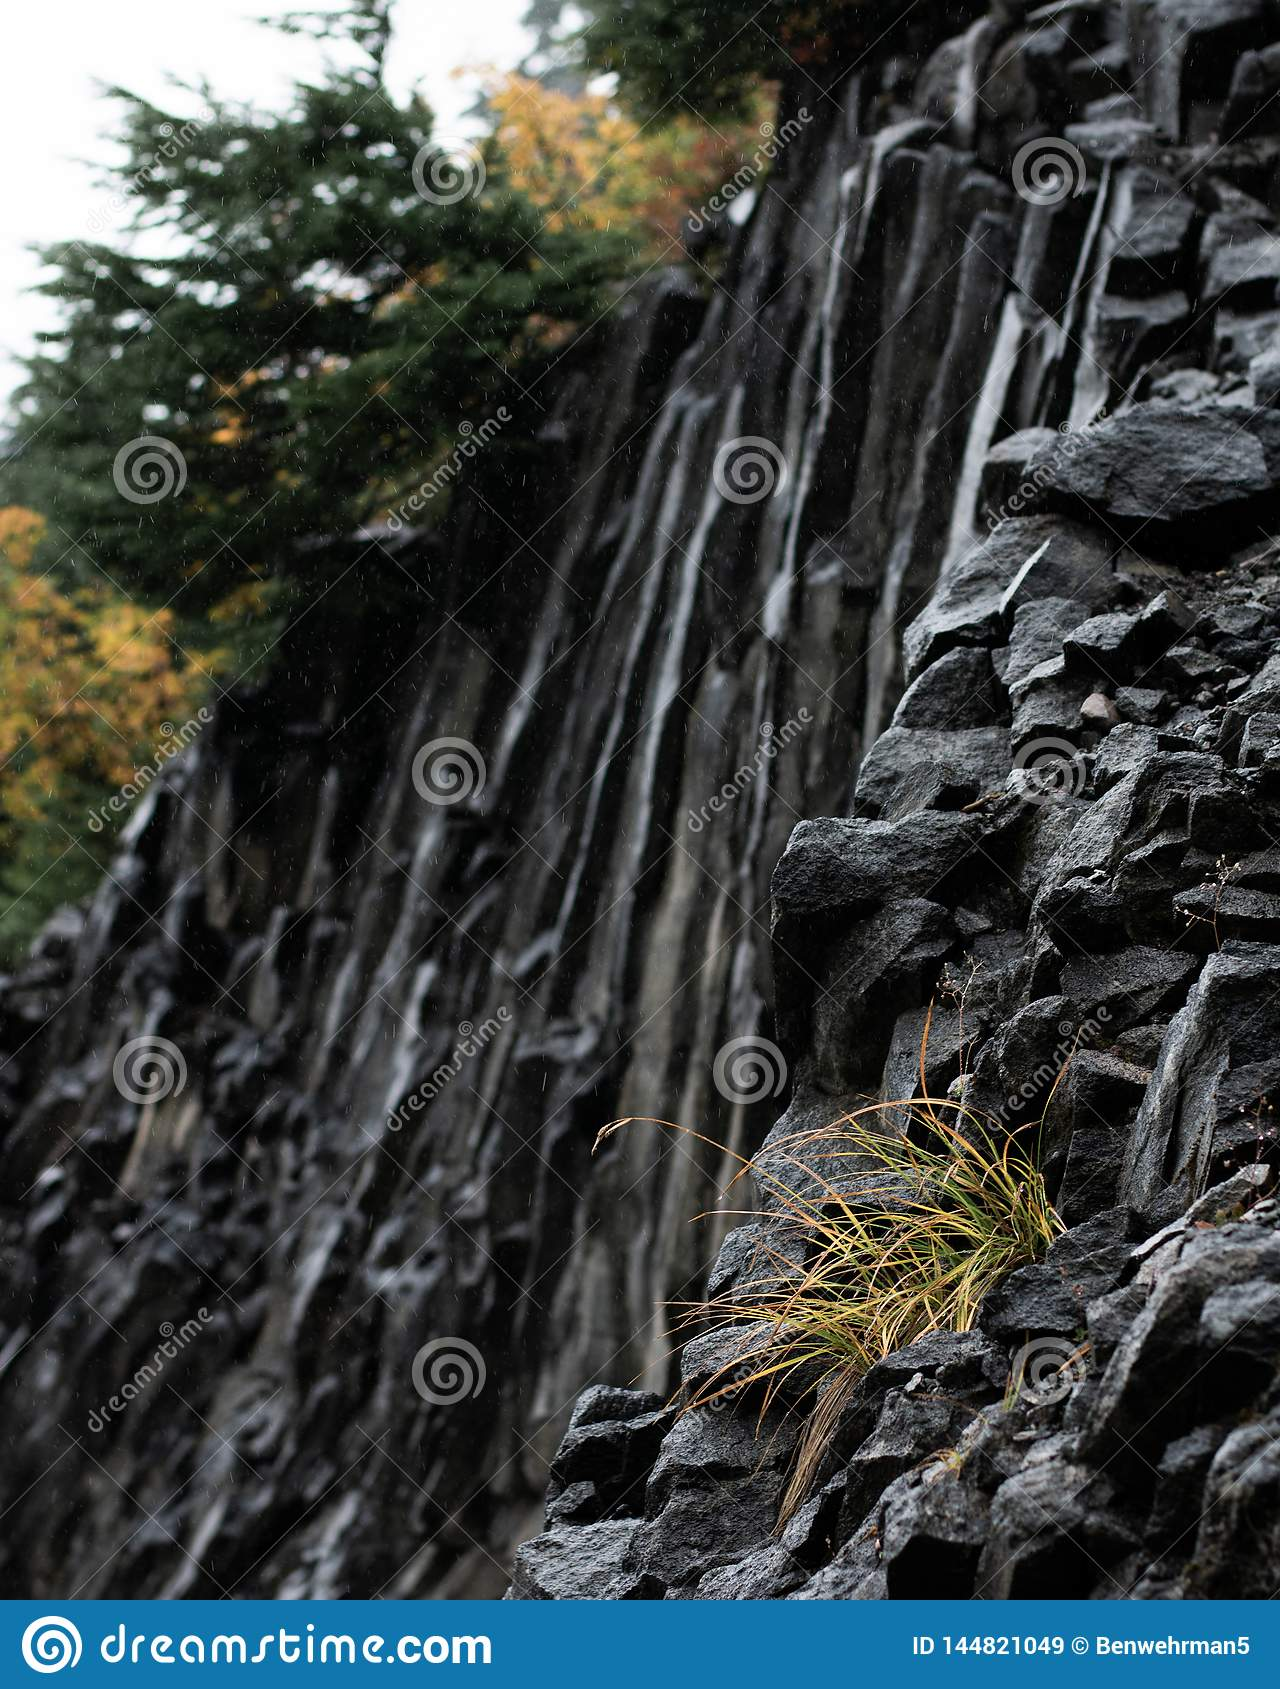 Jagged Rock Face on the Mountain